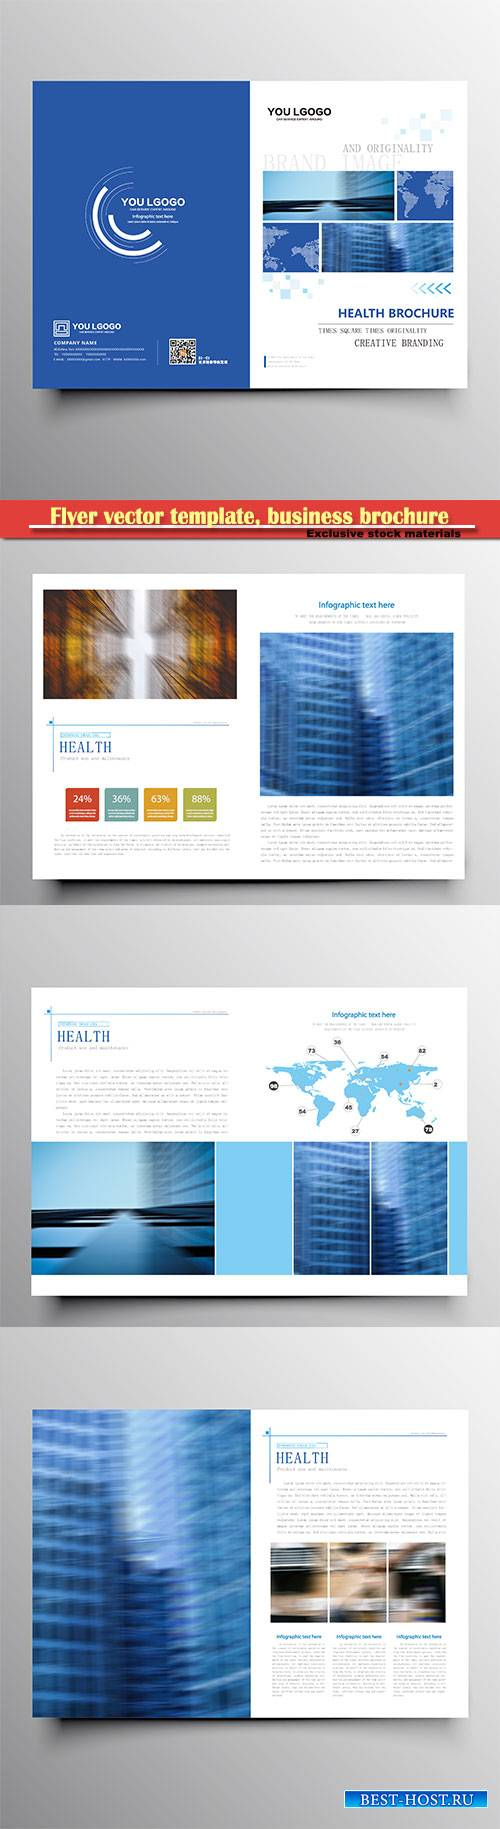 Flyer vector template, business brochure, magazine cover # 33